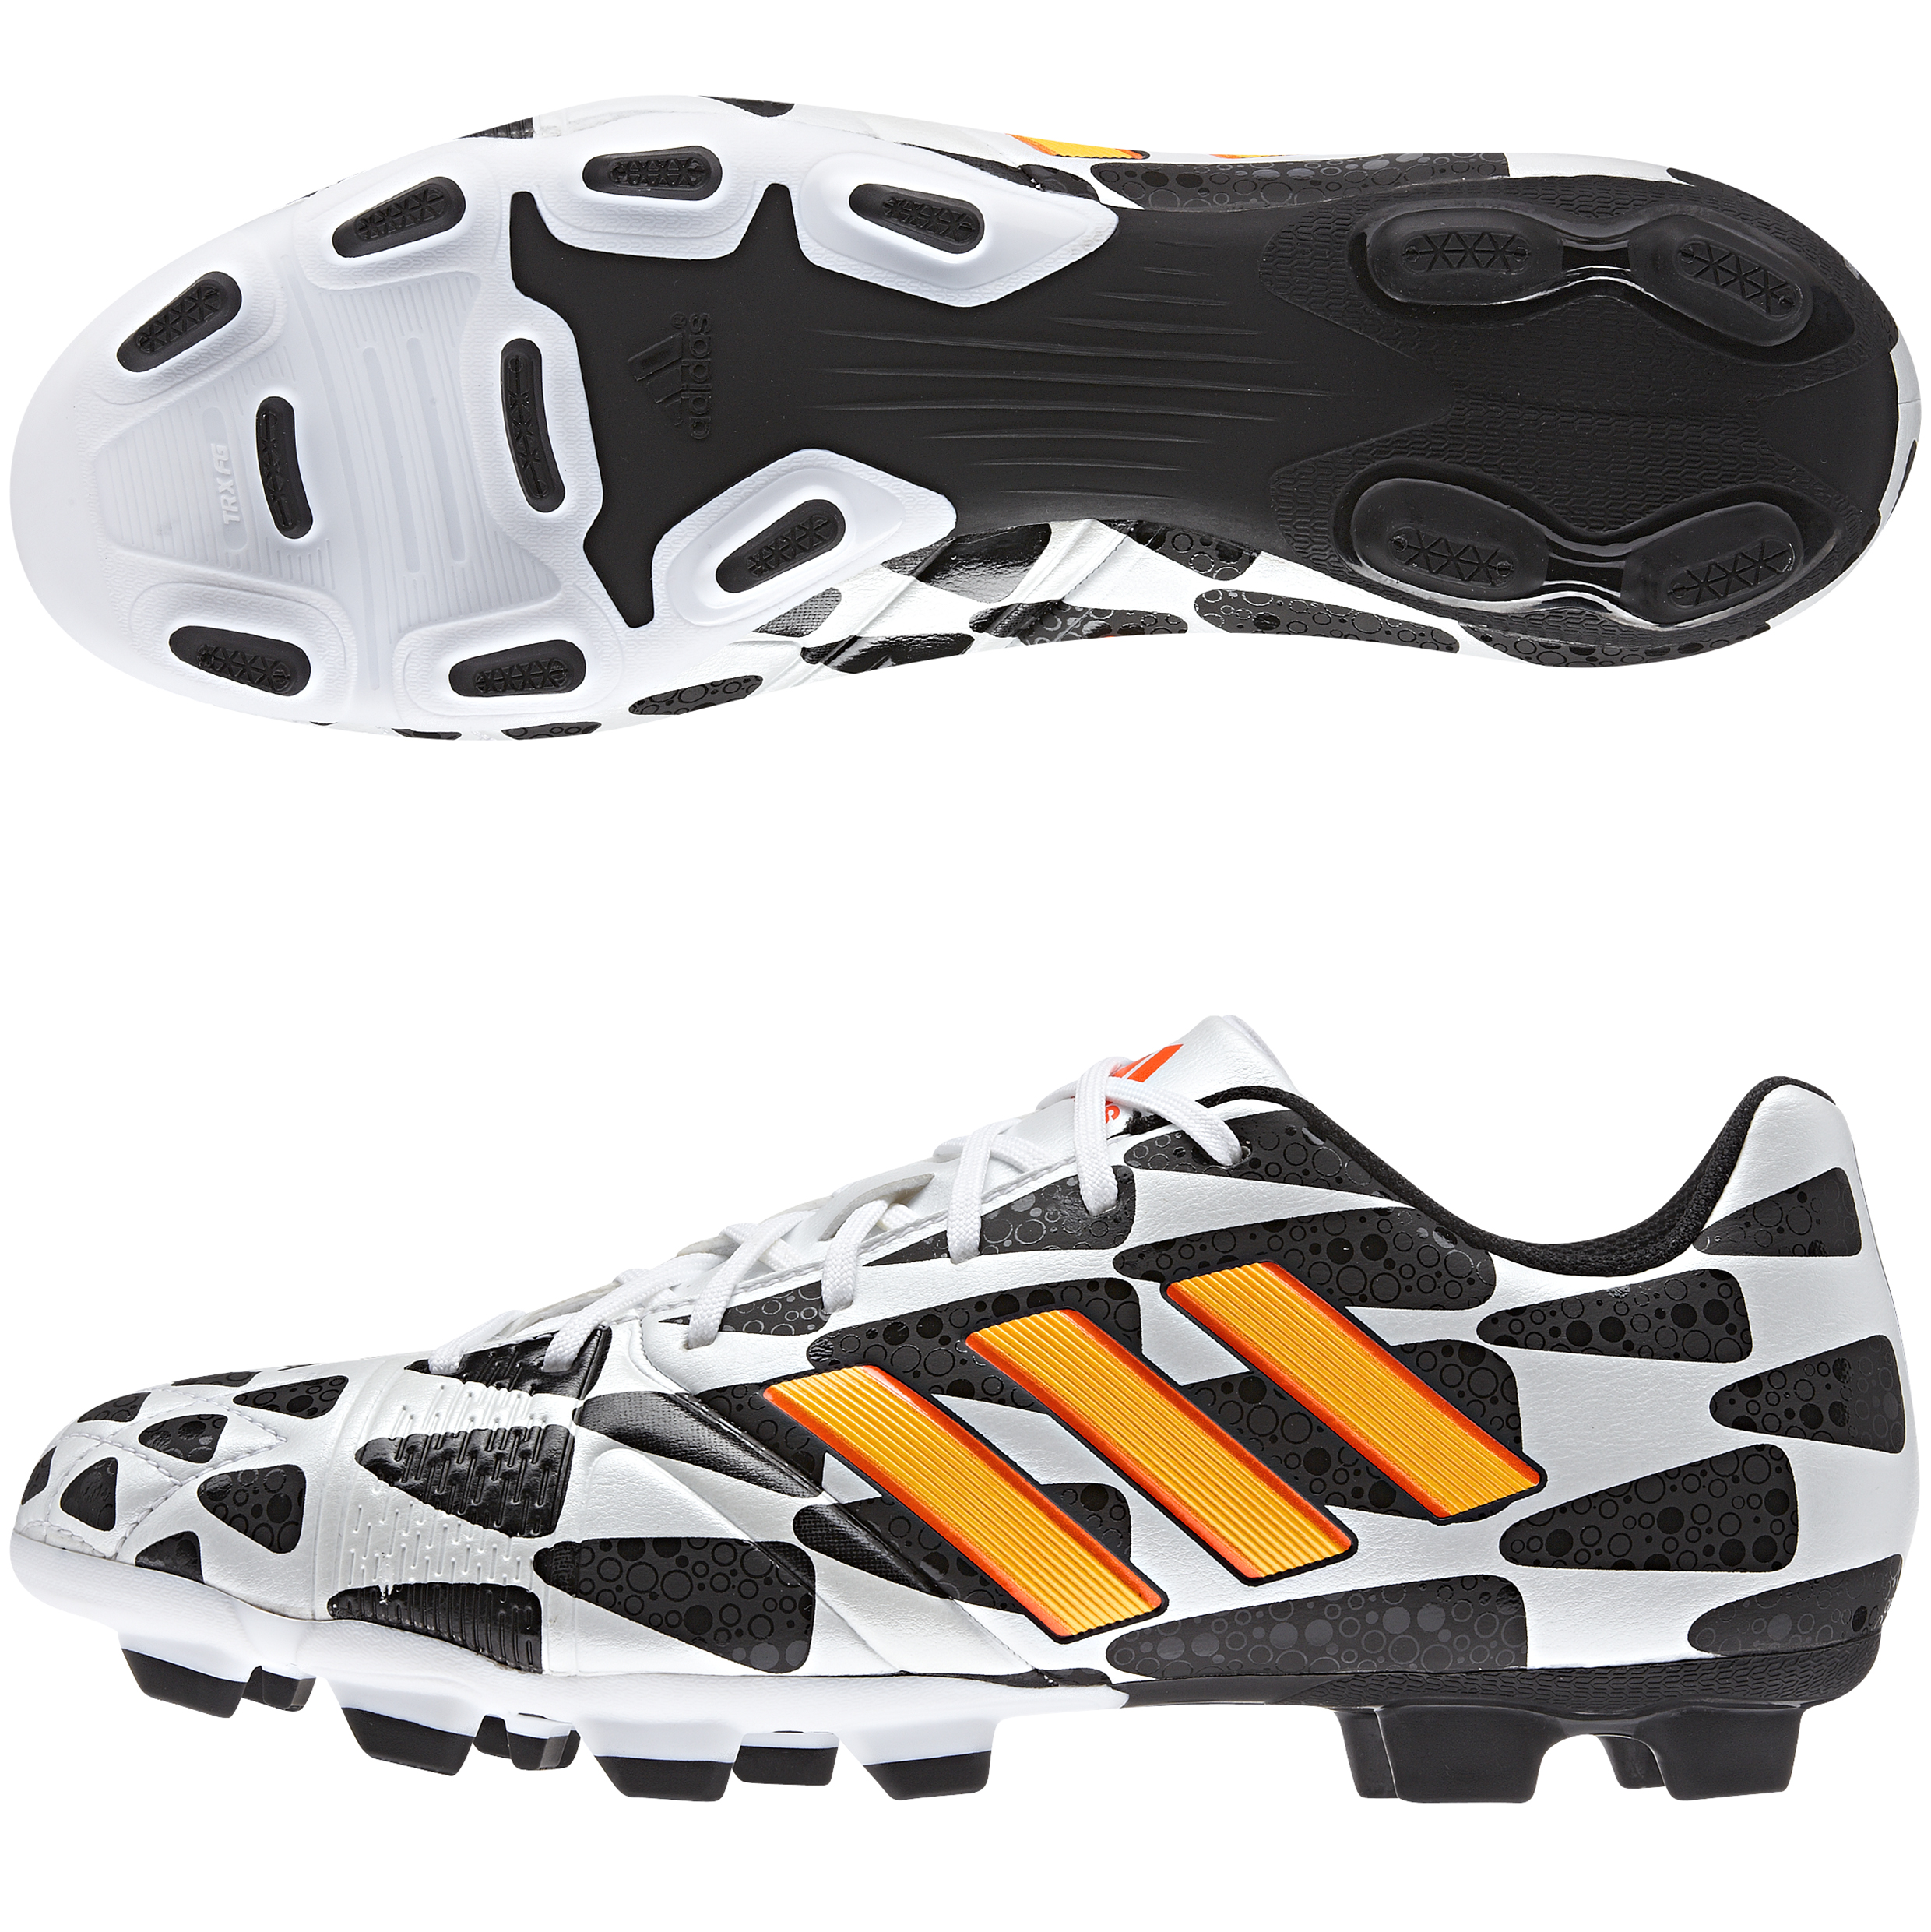 Adidas Nitrocharge 3.0 World Cup 2014 Firm Ground Football Boots White